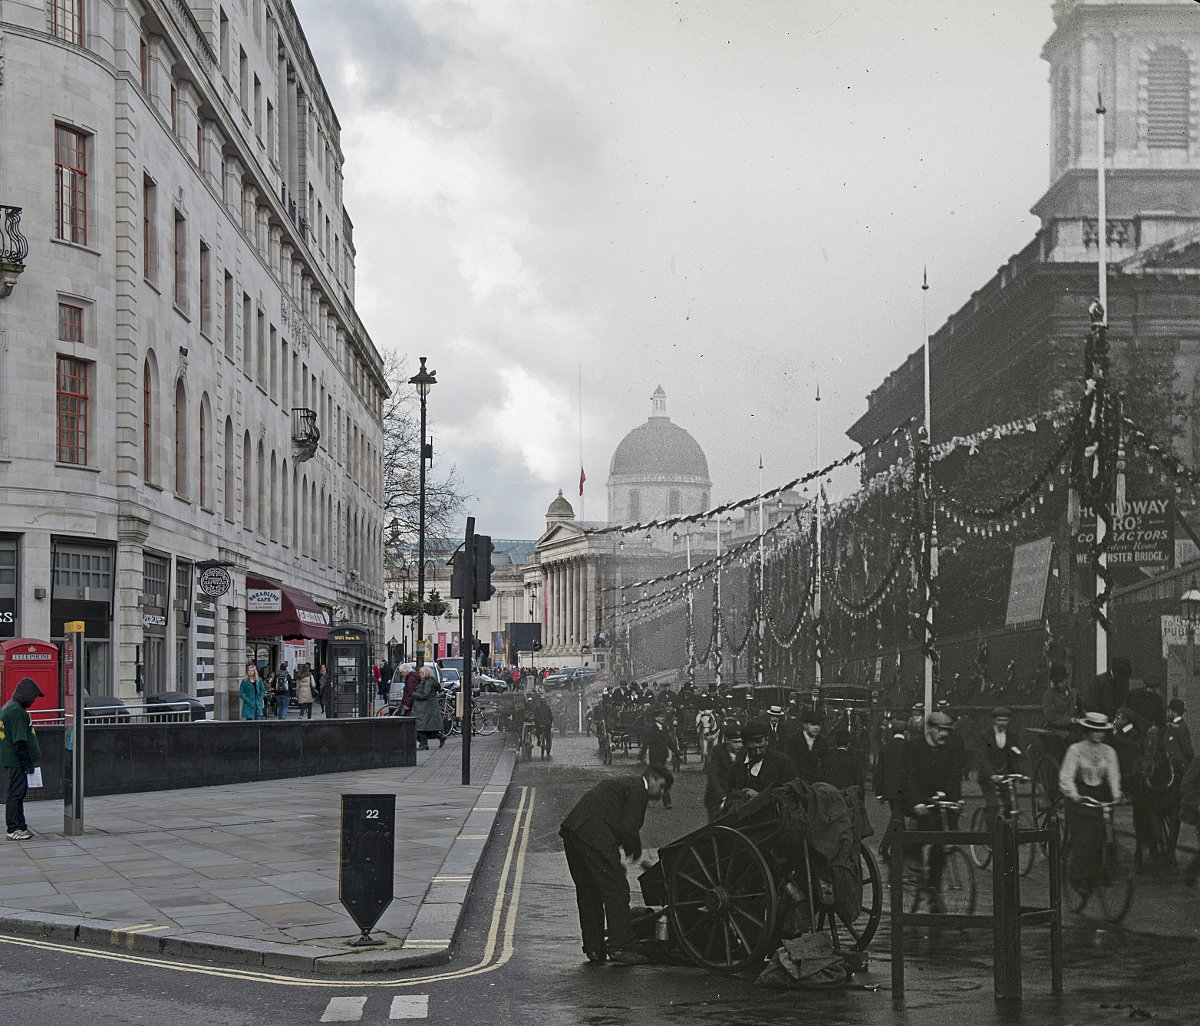 PICTURED: London's ghostly past revealed through the free Streetmuseum app